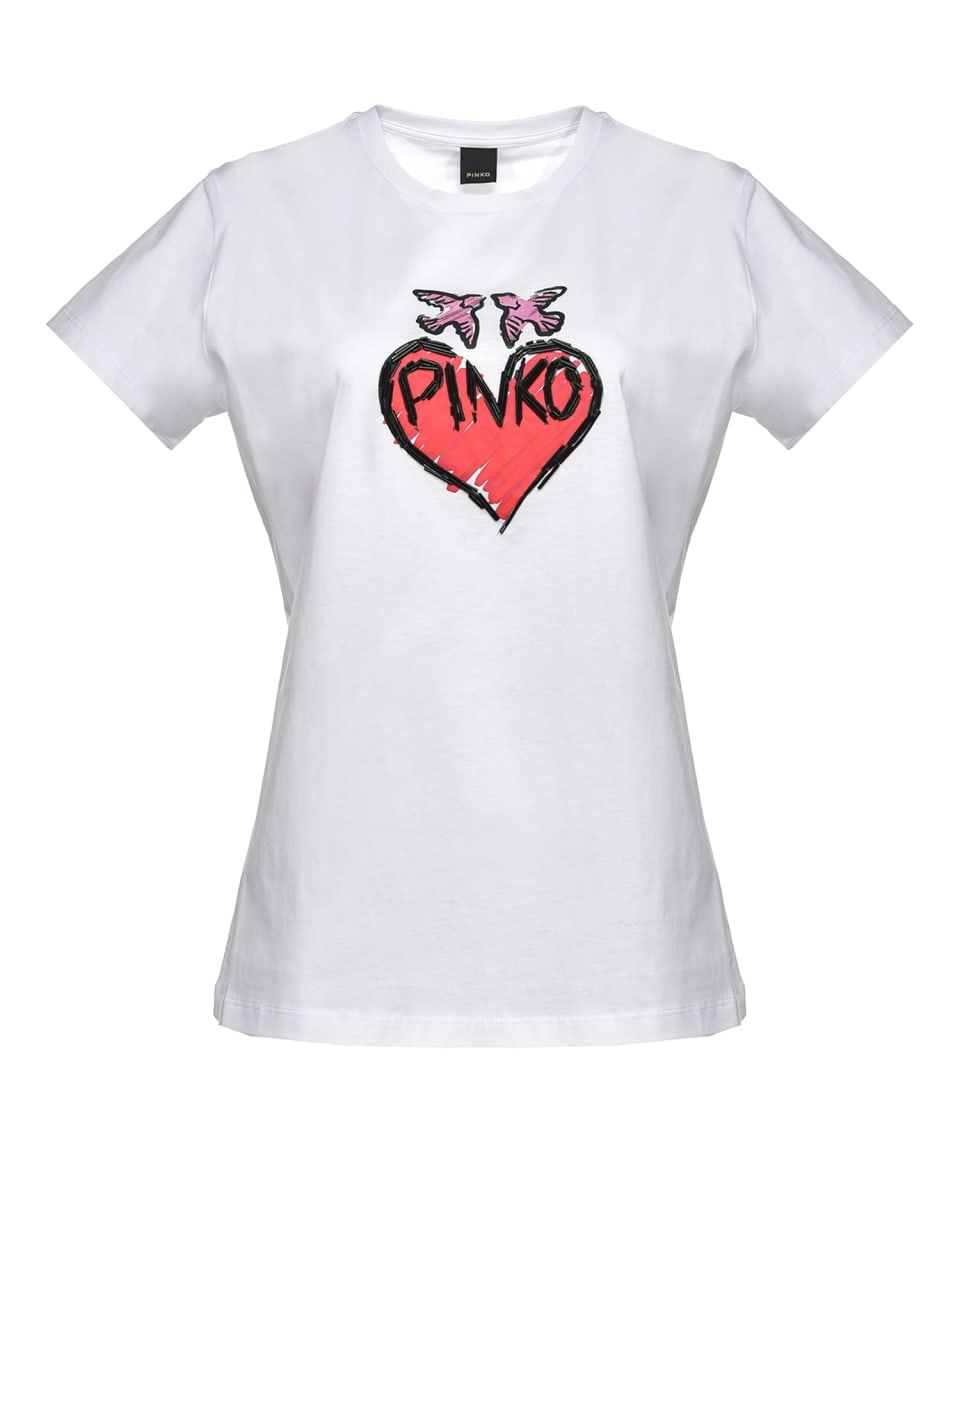 T-shirt with graffiti heart